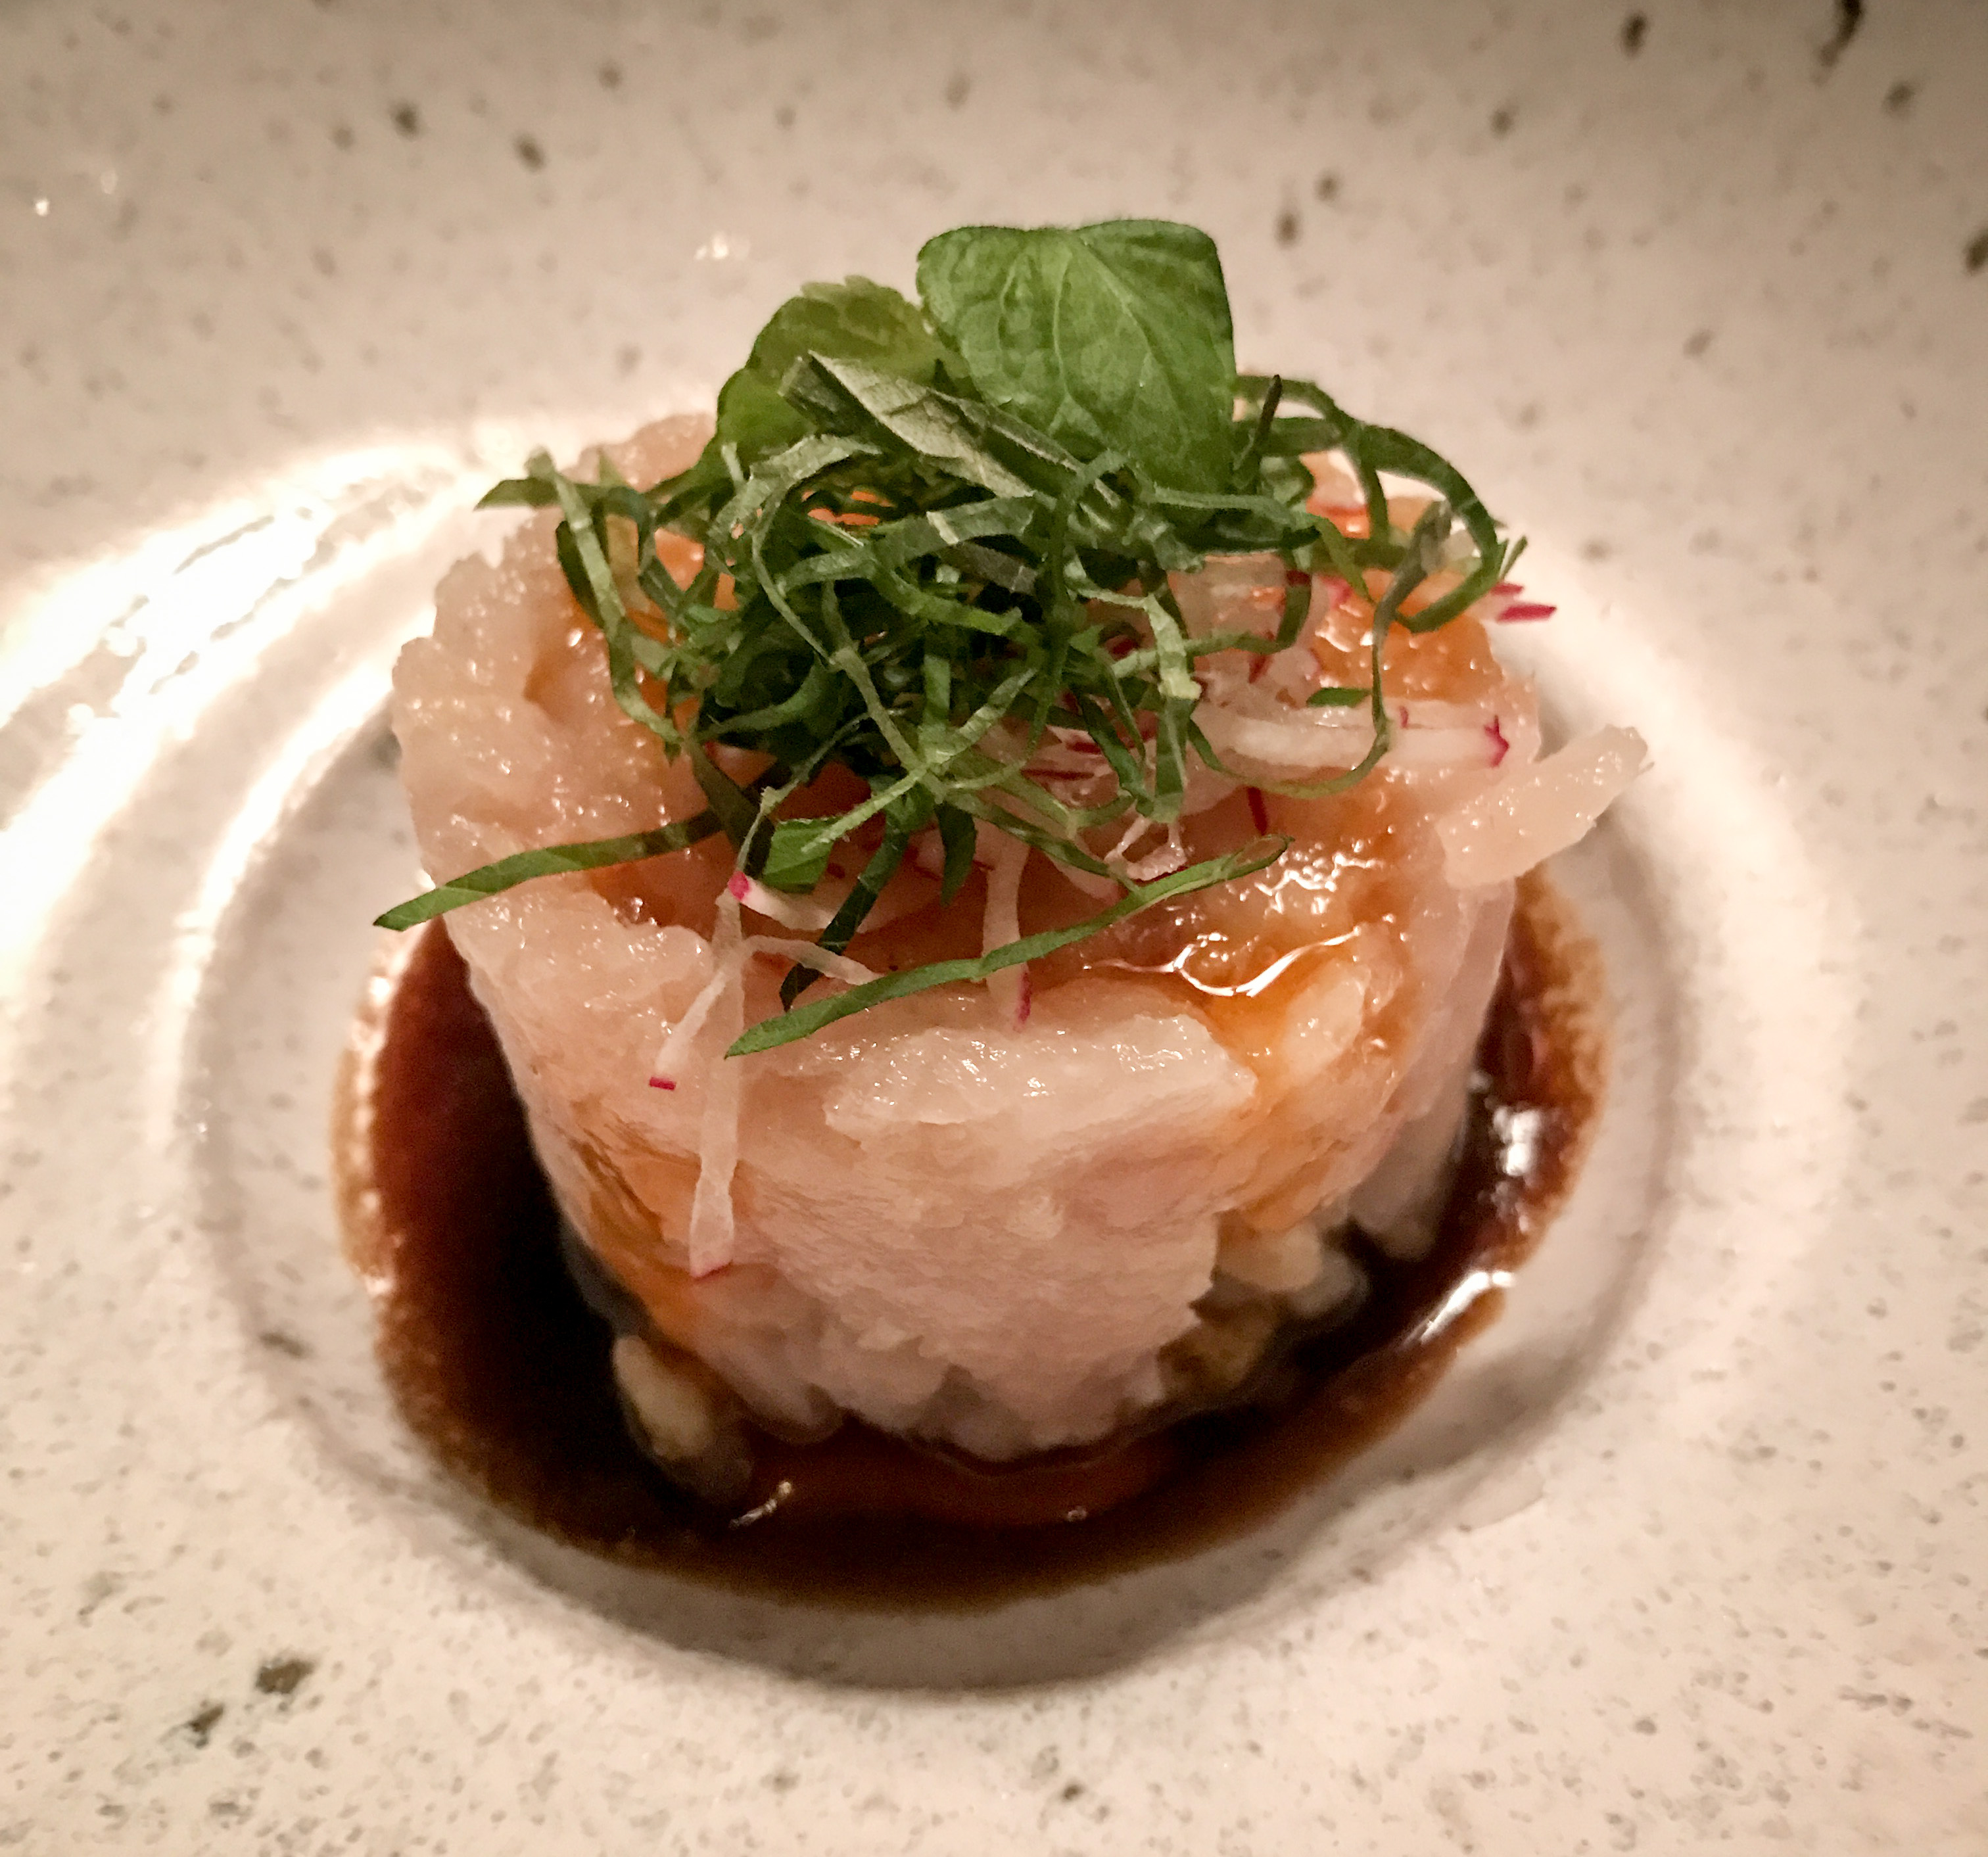 The hamachi tartare was beloved by all with its ginger verjus sauce and spiced chili oil